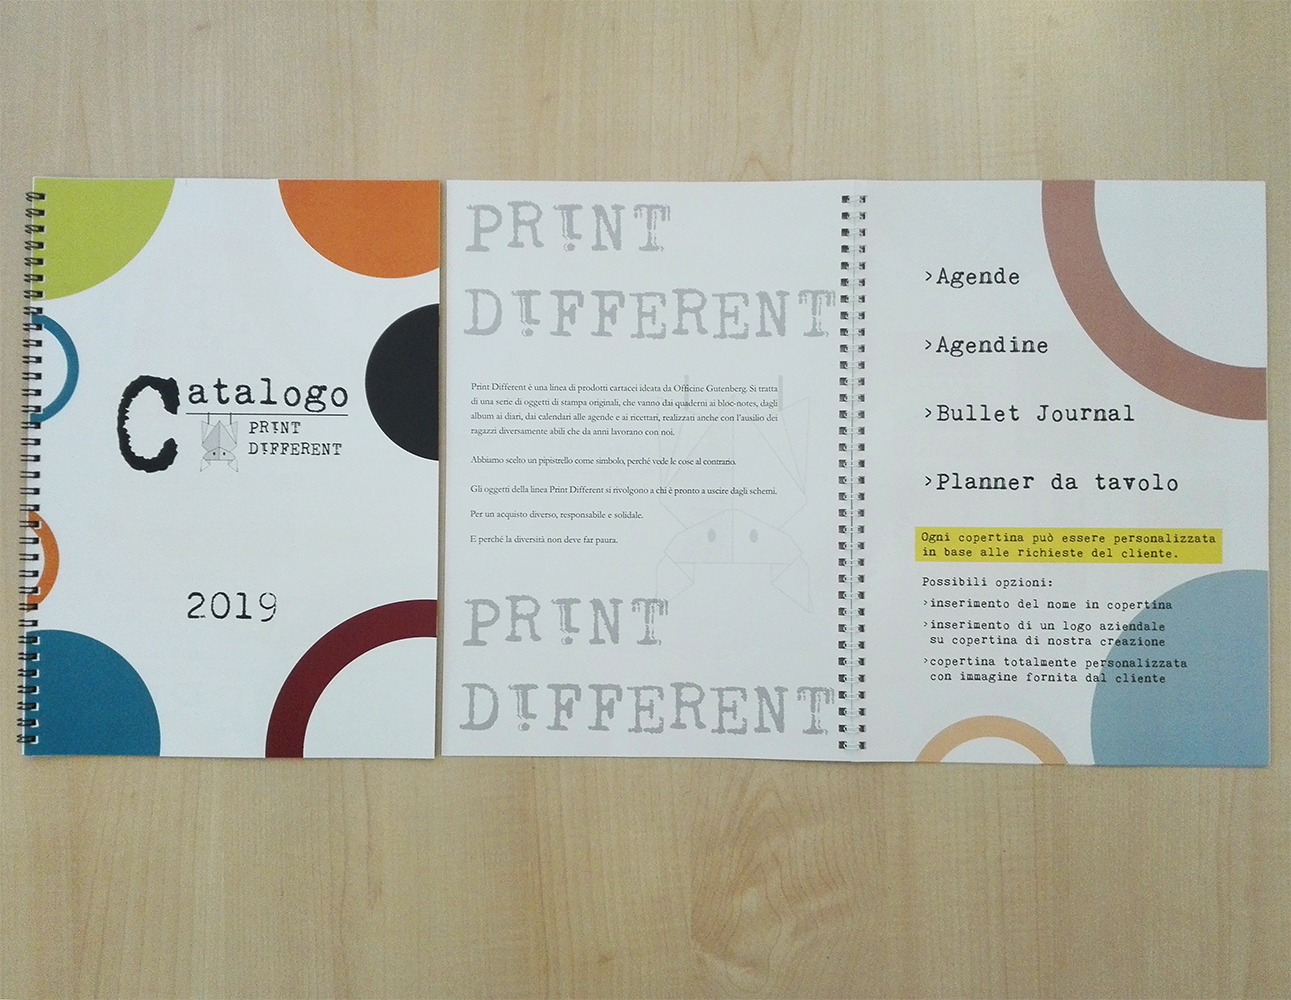 È arrivato il catalogo Print different 2019